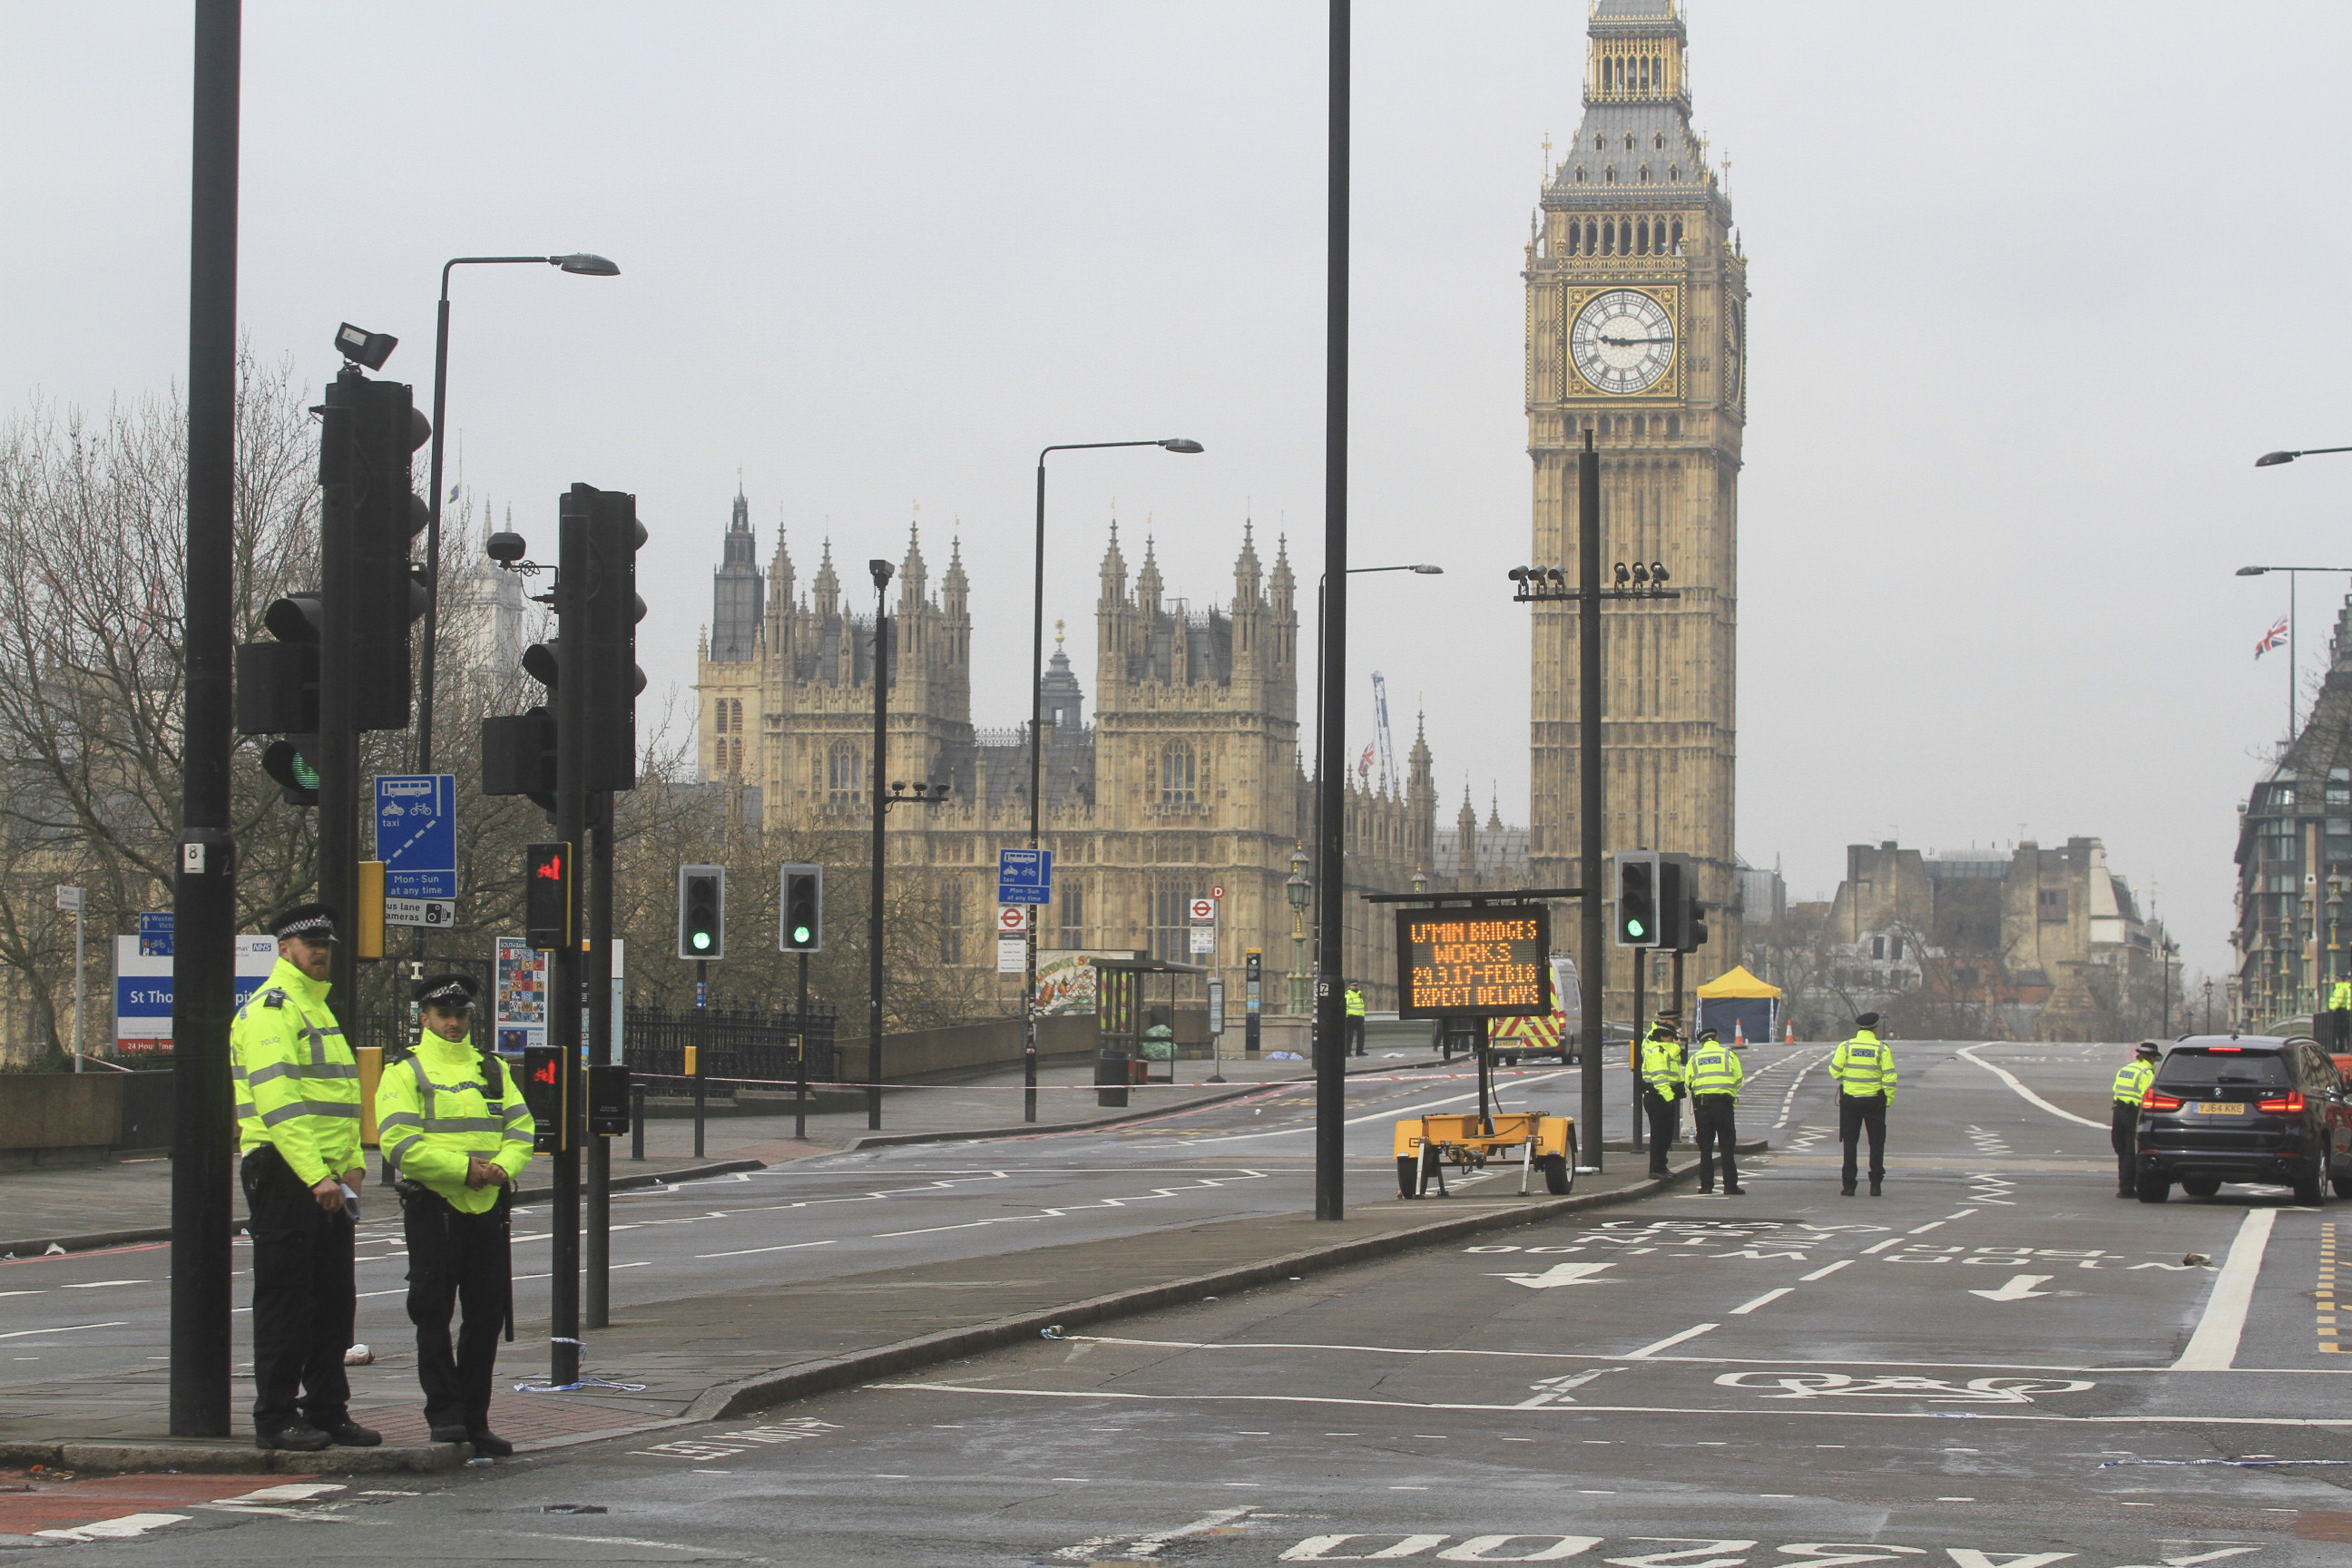 Parliament In Lockdown After London Terror Attack